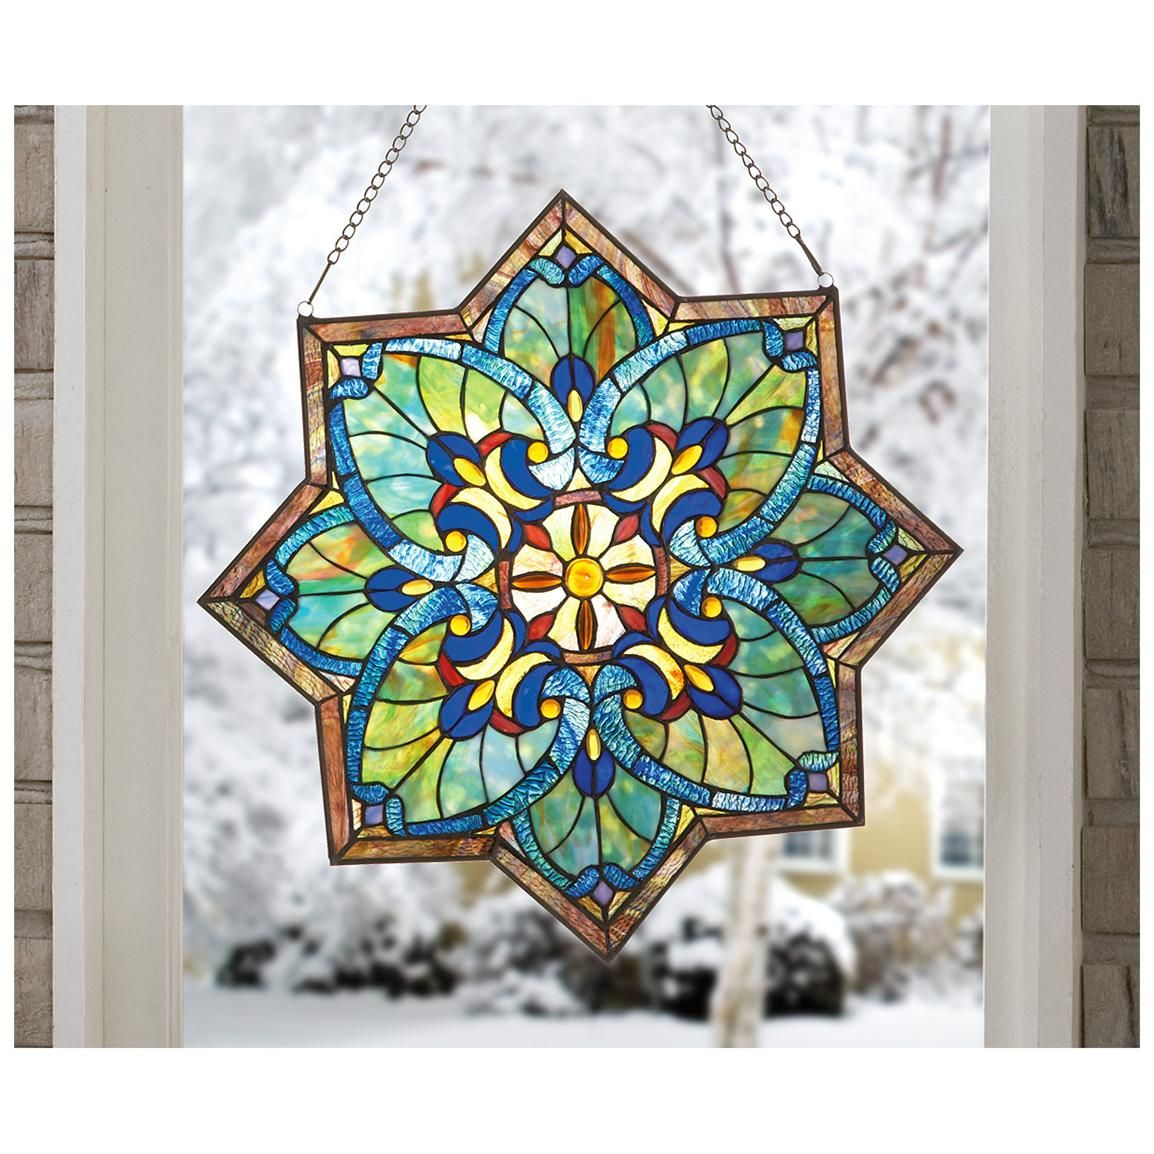 Marvelous Decorative Stained Glass Windows #1: Stained Glass Window Panels | Castlecreek Star Stained Glass Window Panel -  1104877, Decorative Acc